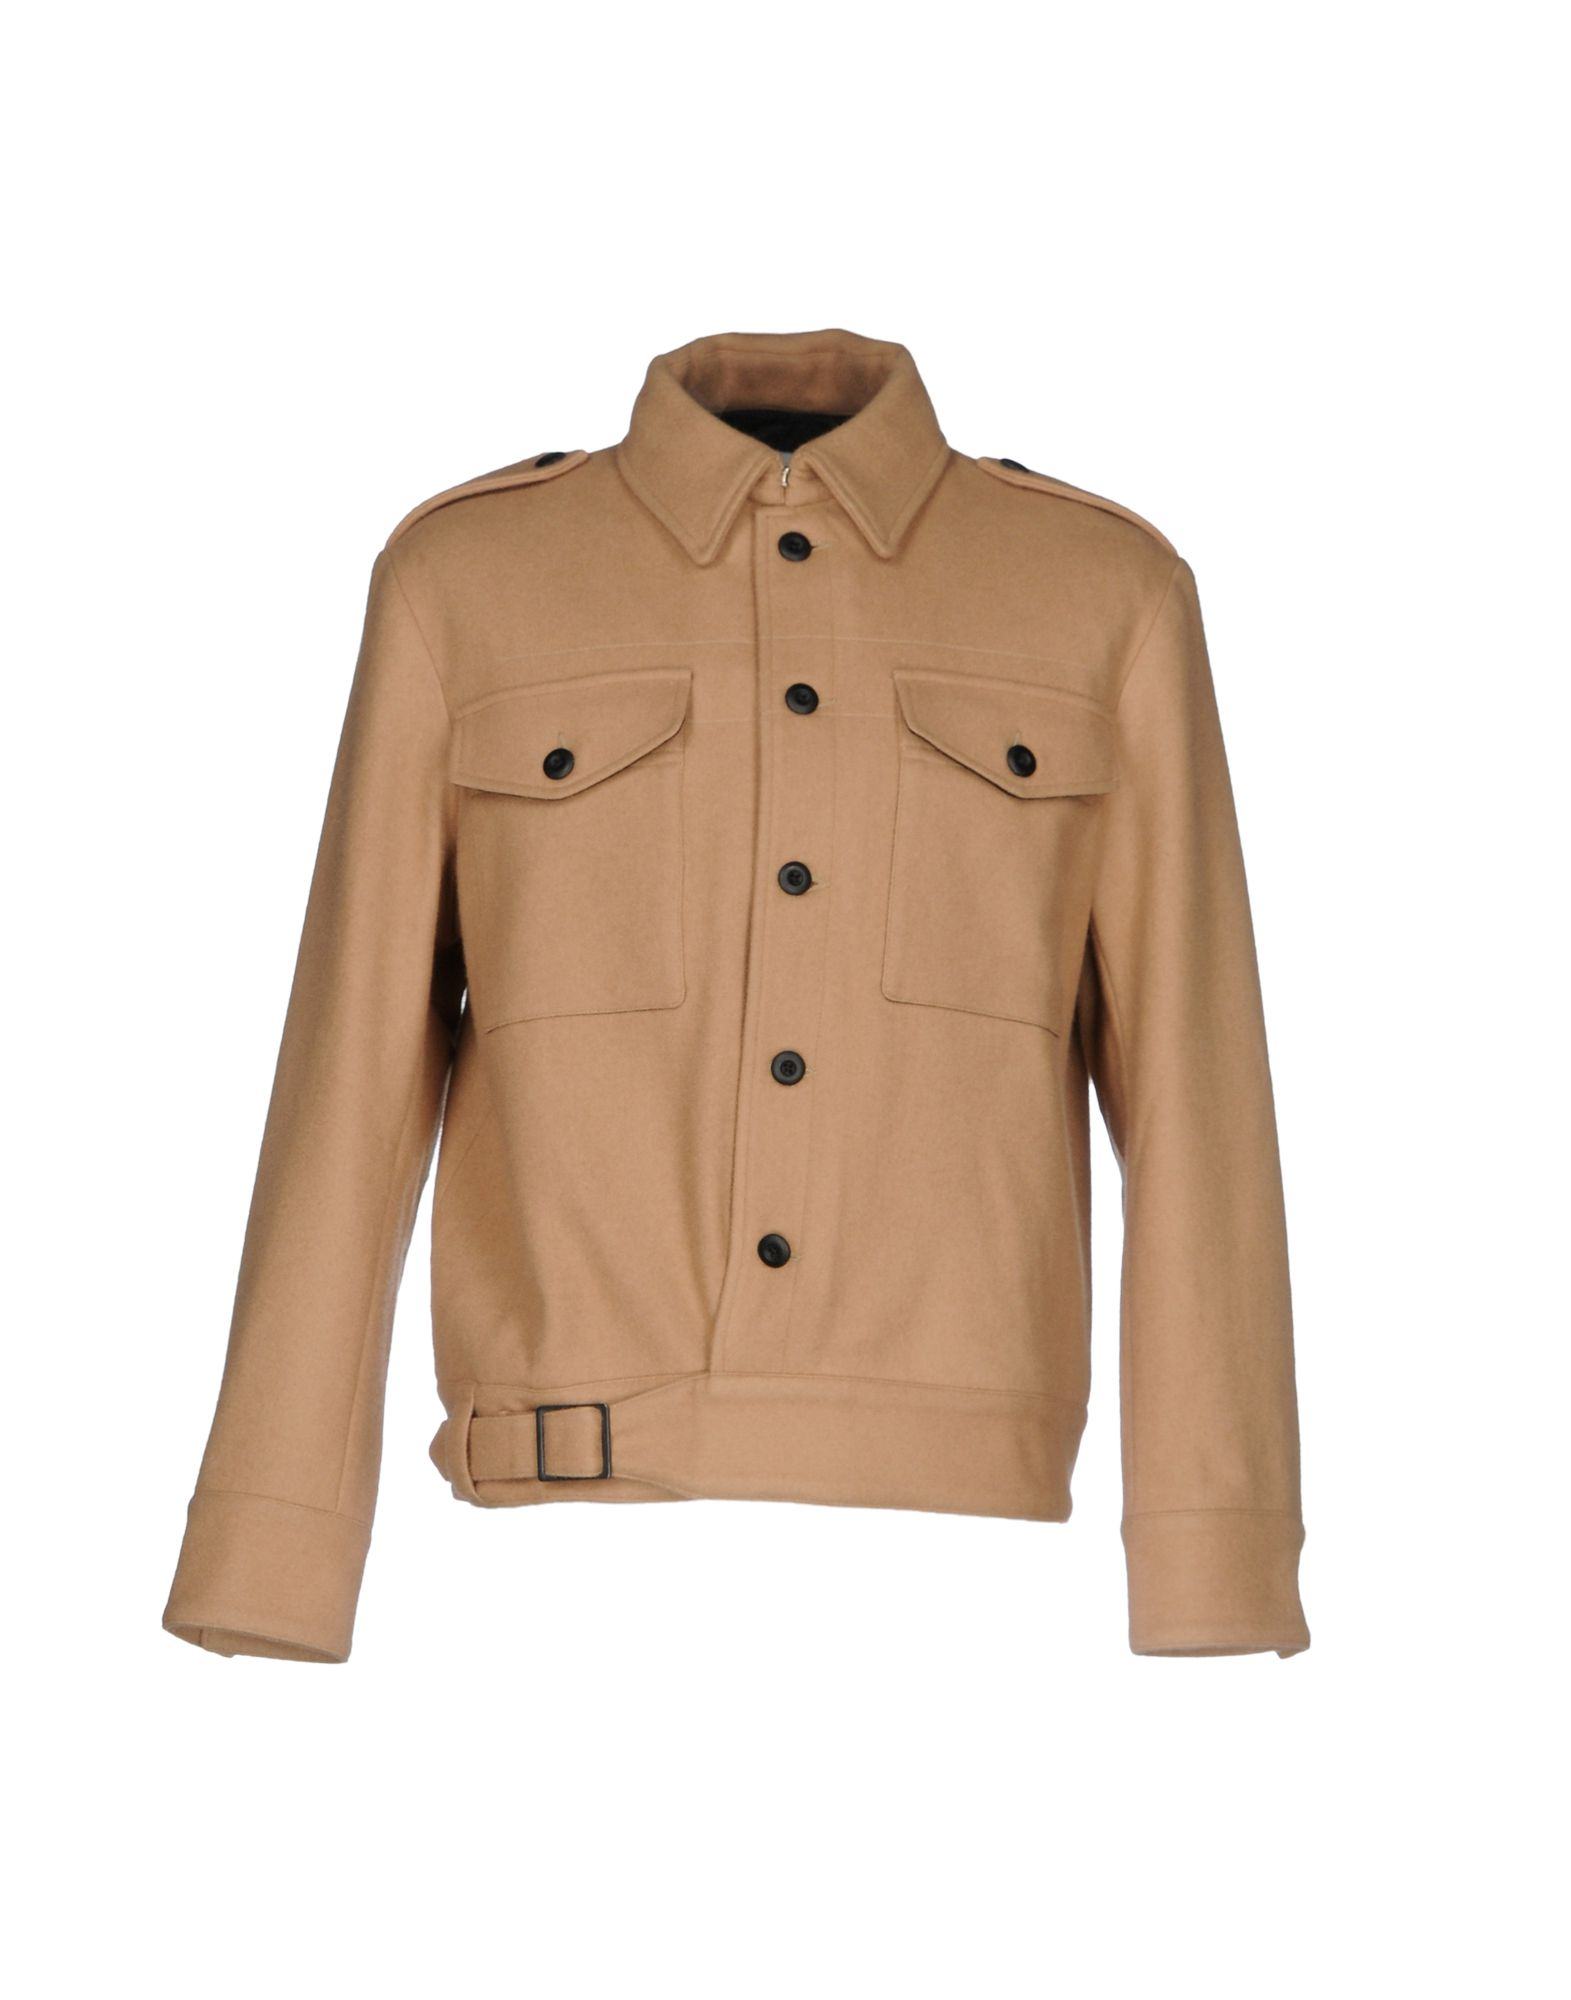 MAXWELL SNOW Jacket in Camel